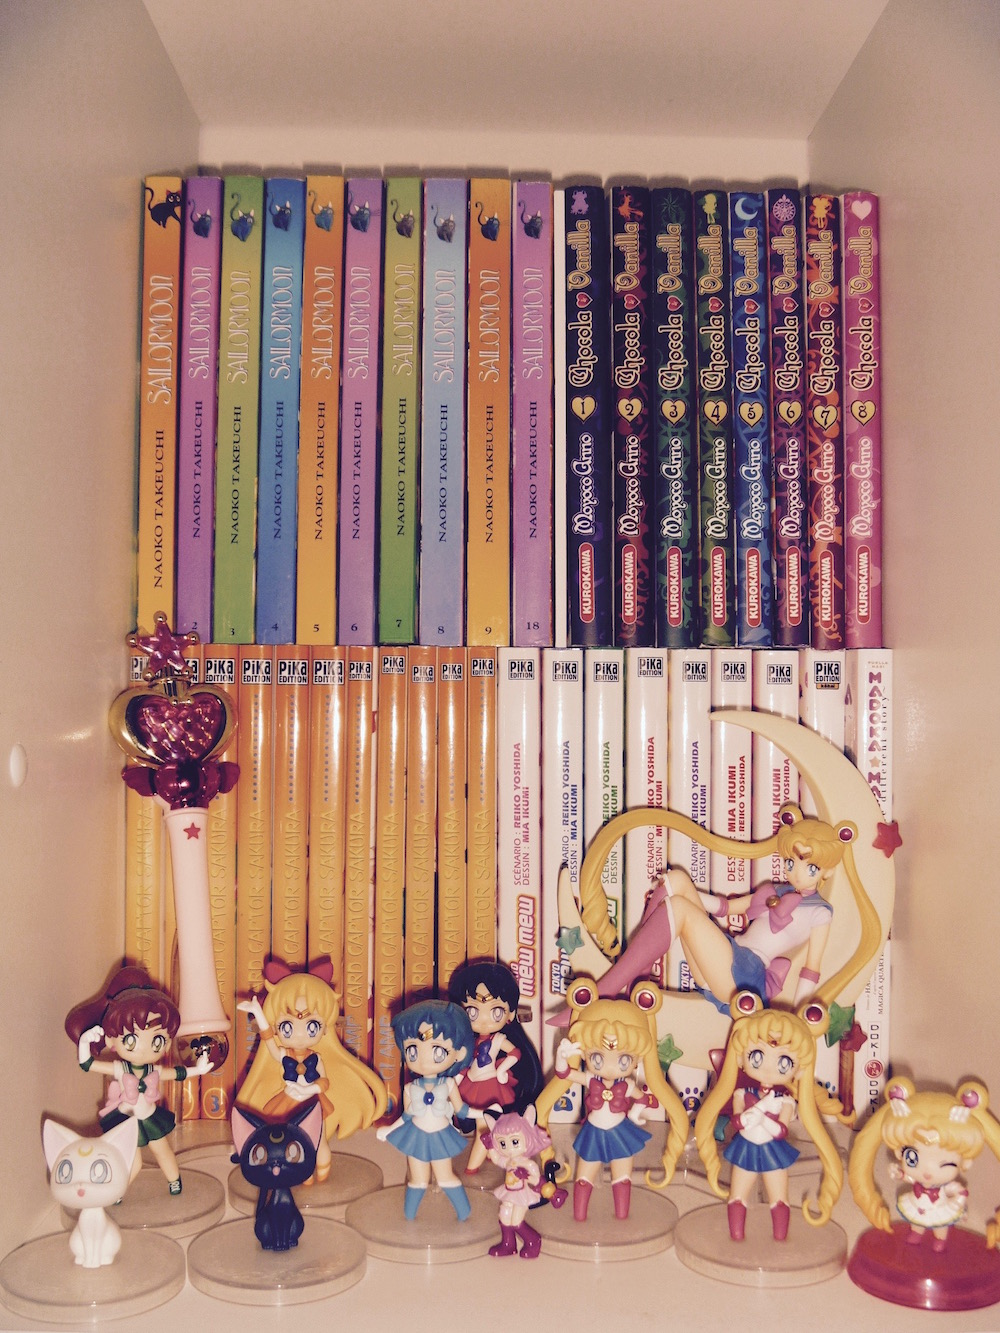 megahouse sailor_moon sailor_mars artemis luna banpresto bandai sailor_venus ichiban_kuji sailor_mercury sailor_jupiter bishoujo_senshi_sailor_moon toei_animation takeuchi_naoko super_sailor_moon bishoujo_senshi_sailor_moon_s girls_memories ichiban_kuji_bishoujo_senshi_sailor_moon bishoujo_senshi_sailor_moon_atsumete_figure_for_girls petit_chara!_series petit_chara!_series_bishoujo_senshi_sailor_moon_atarashii_nakama_to_henshin_yo!_hen